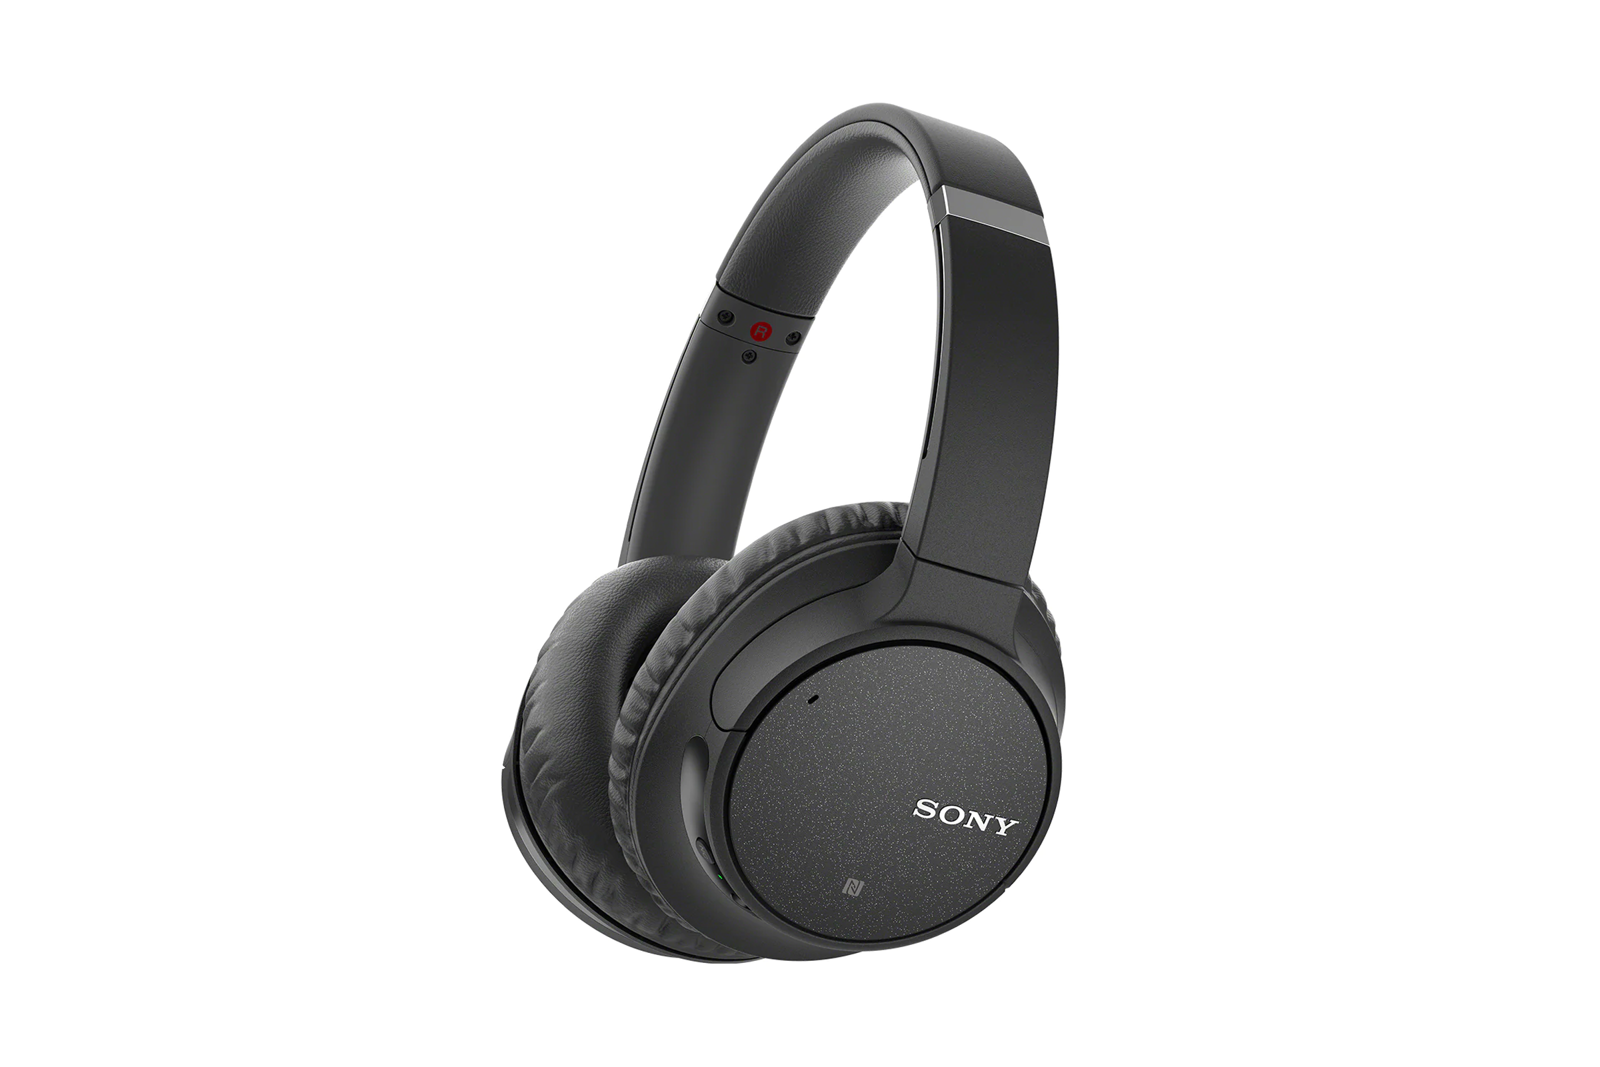 Sony WH-CH700N Wireless Noise Cancelling Over-the-Ear Headphones Black